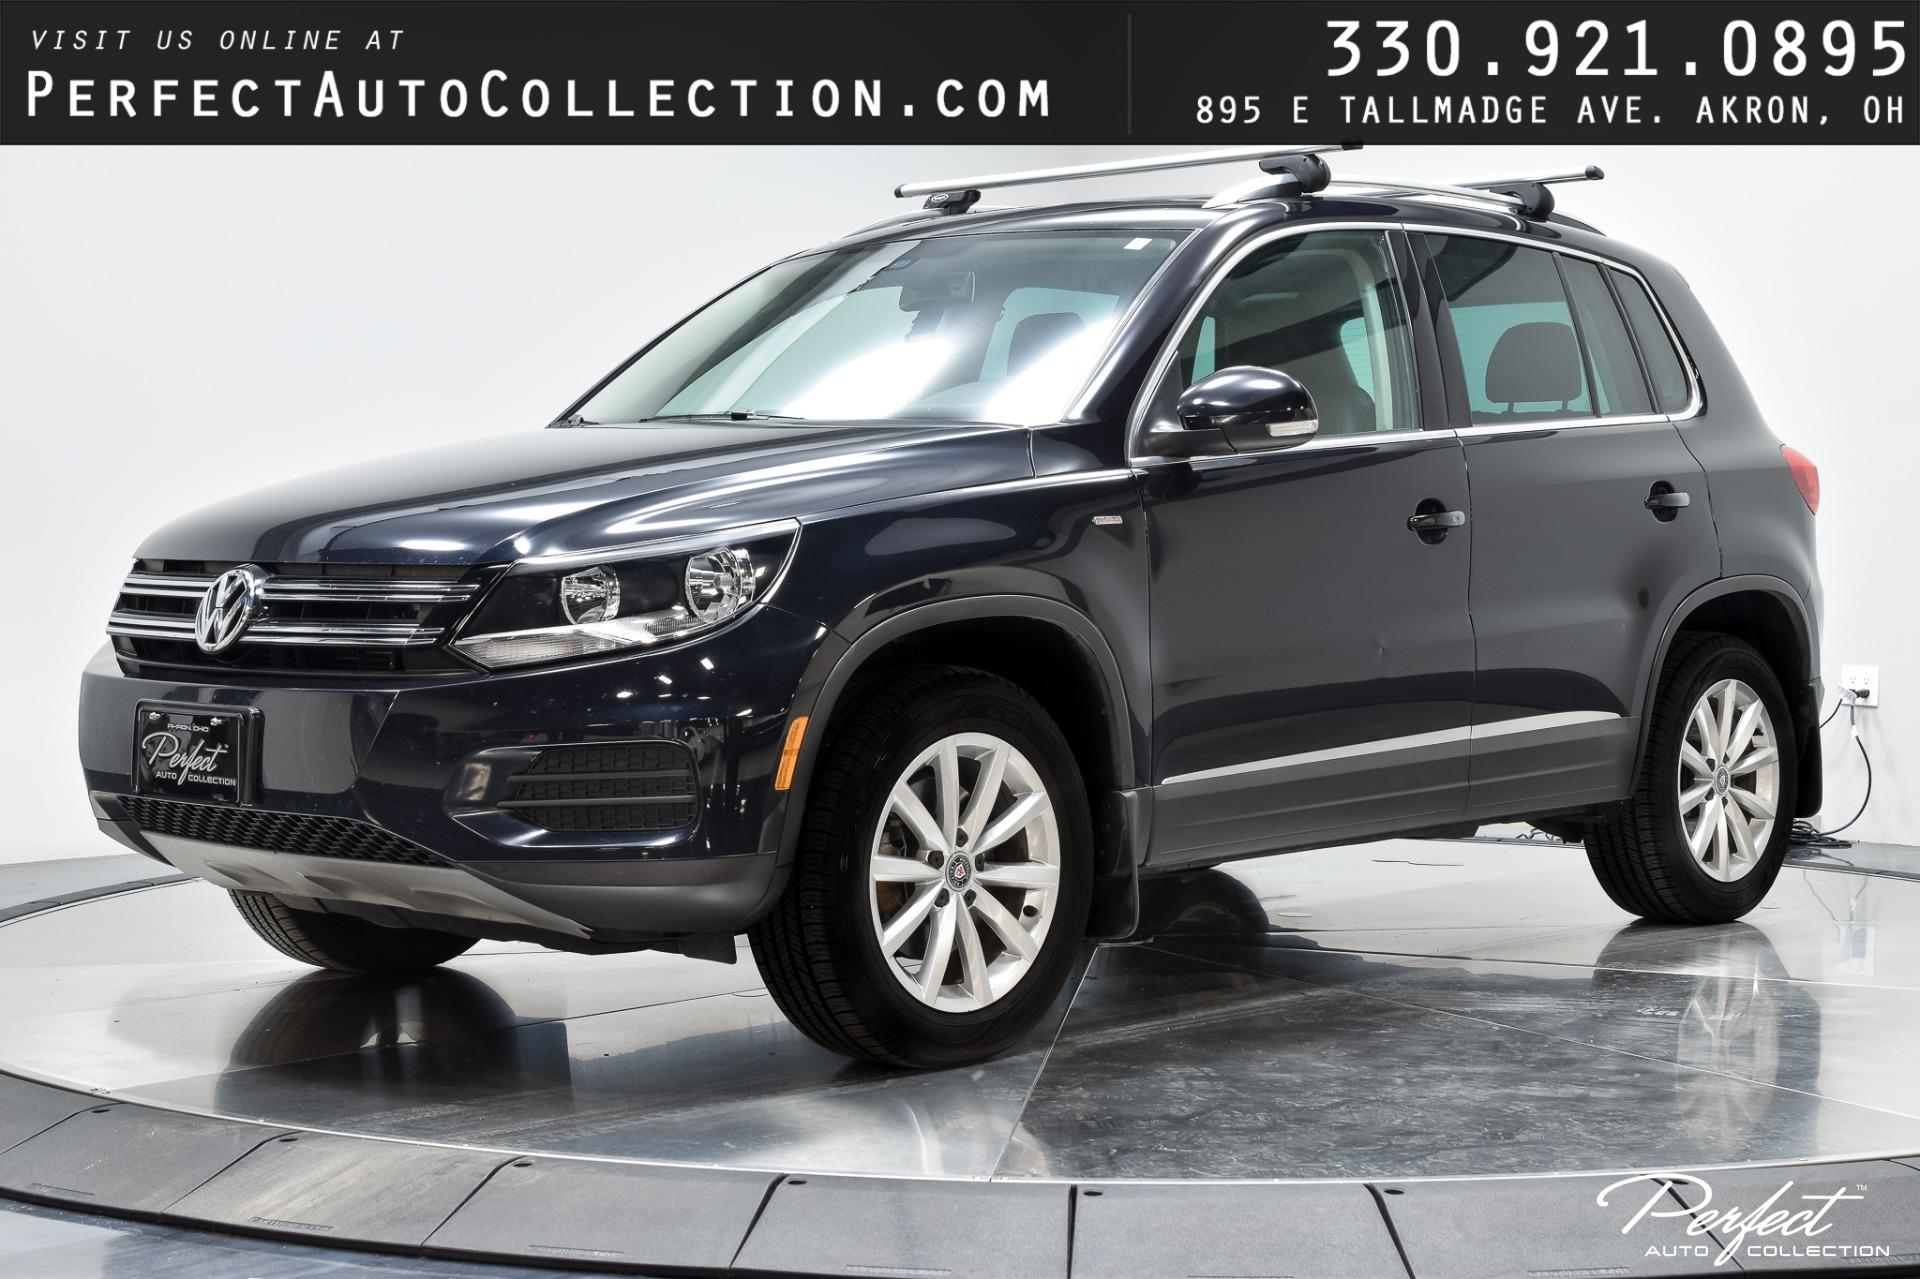 Used 2017 Volkswagen Tiguan 2.0T Wolfsburg Edition 4Motion for sale Sold at Perfect Auto Collection in Akron OH 44310 1